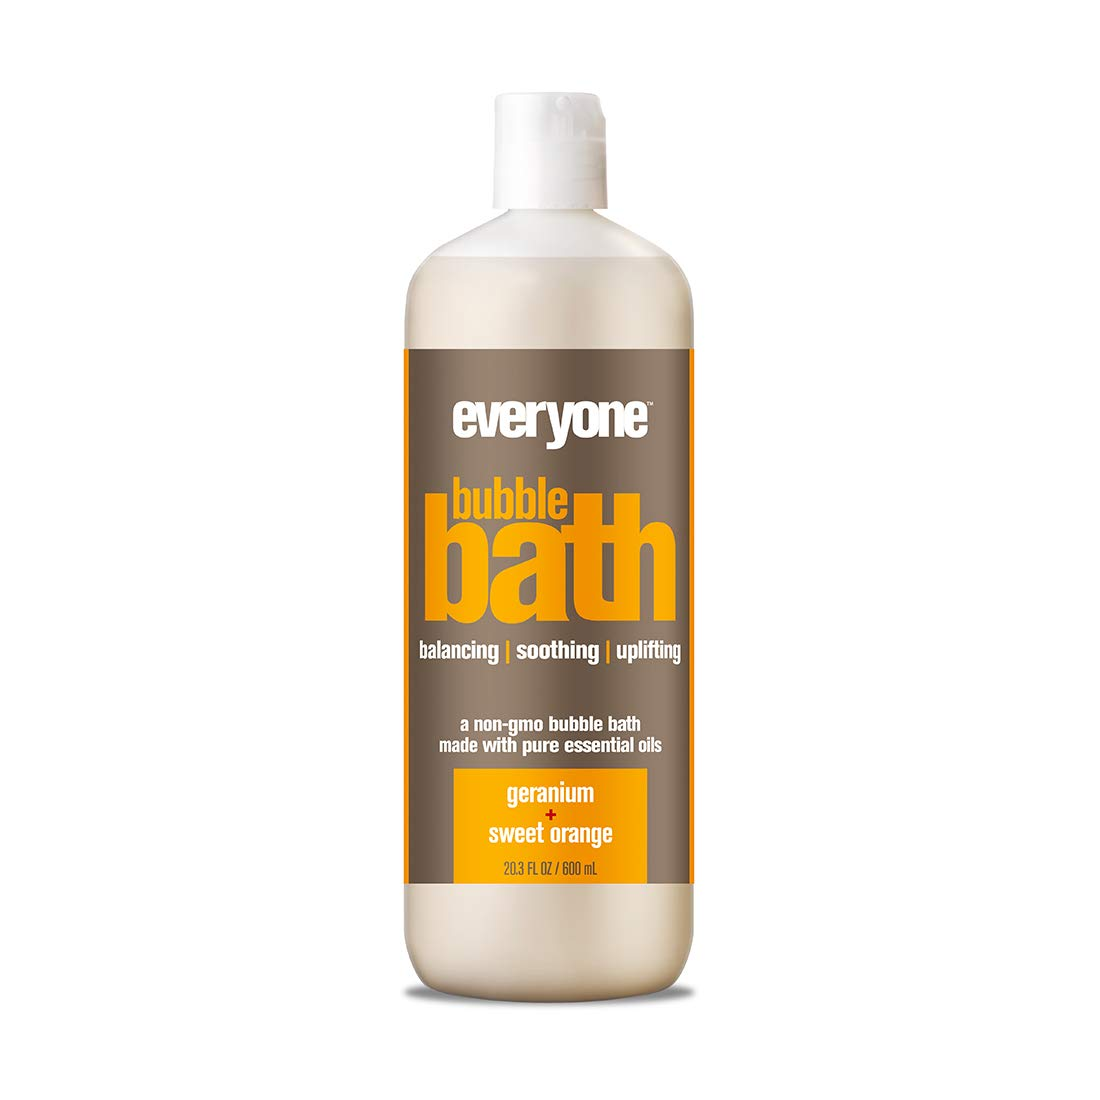 Everyone Natural Bubble Bath, Geranium & Sweet Orange, 20 Ounce EO Products